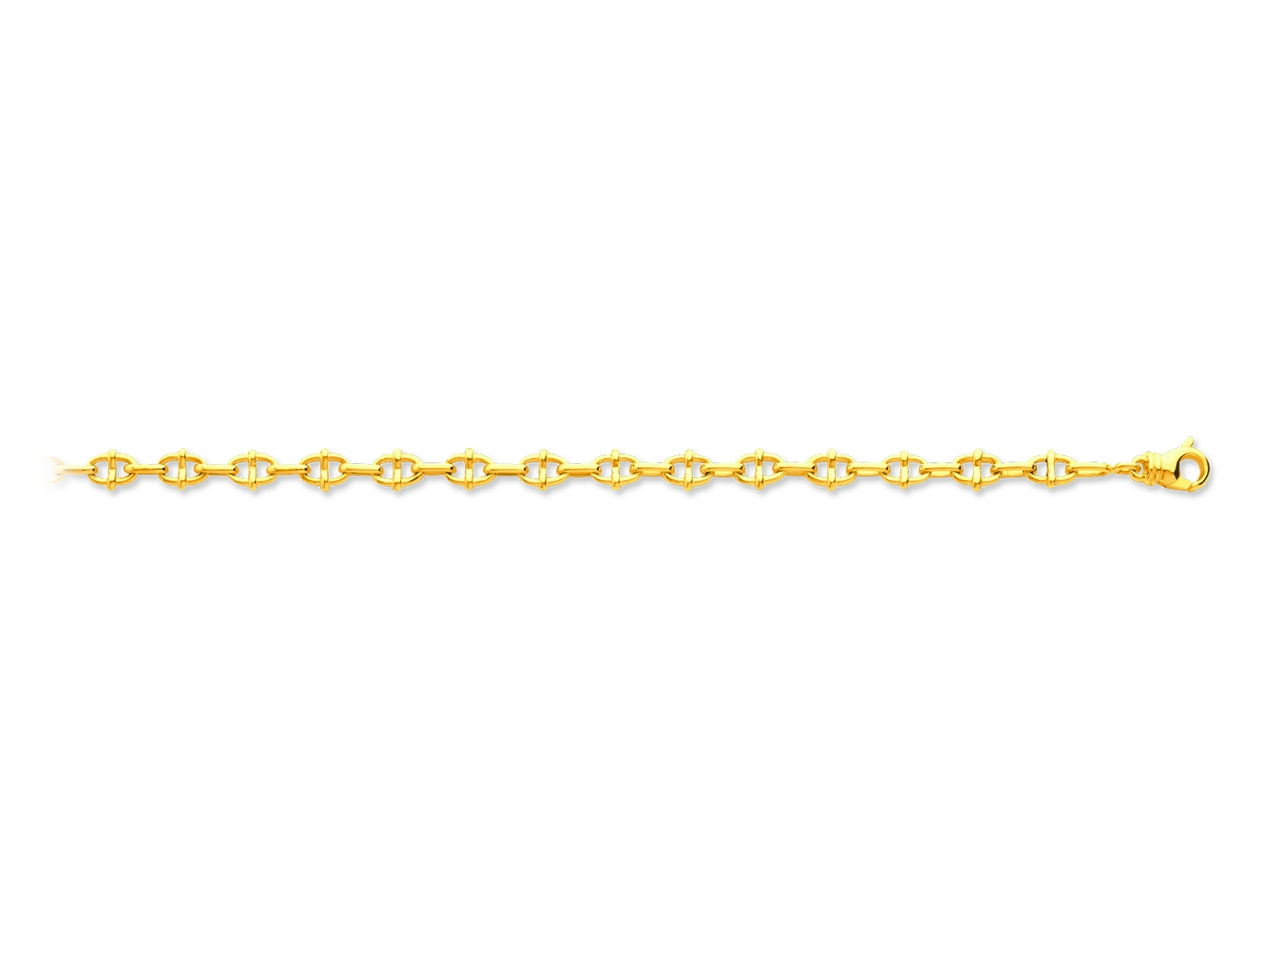 Bracelet maille marine fantaisie alterné, Or jaune 18k, 5,4 mm, 18,5 cm